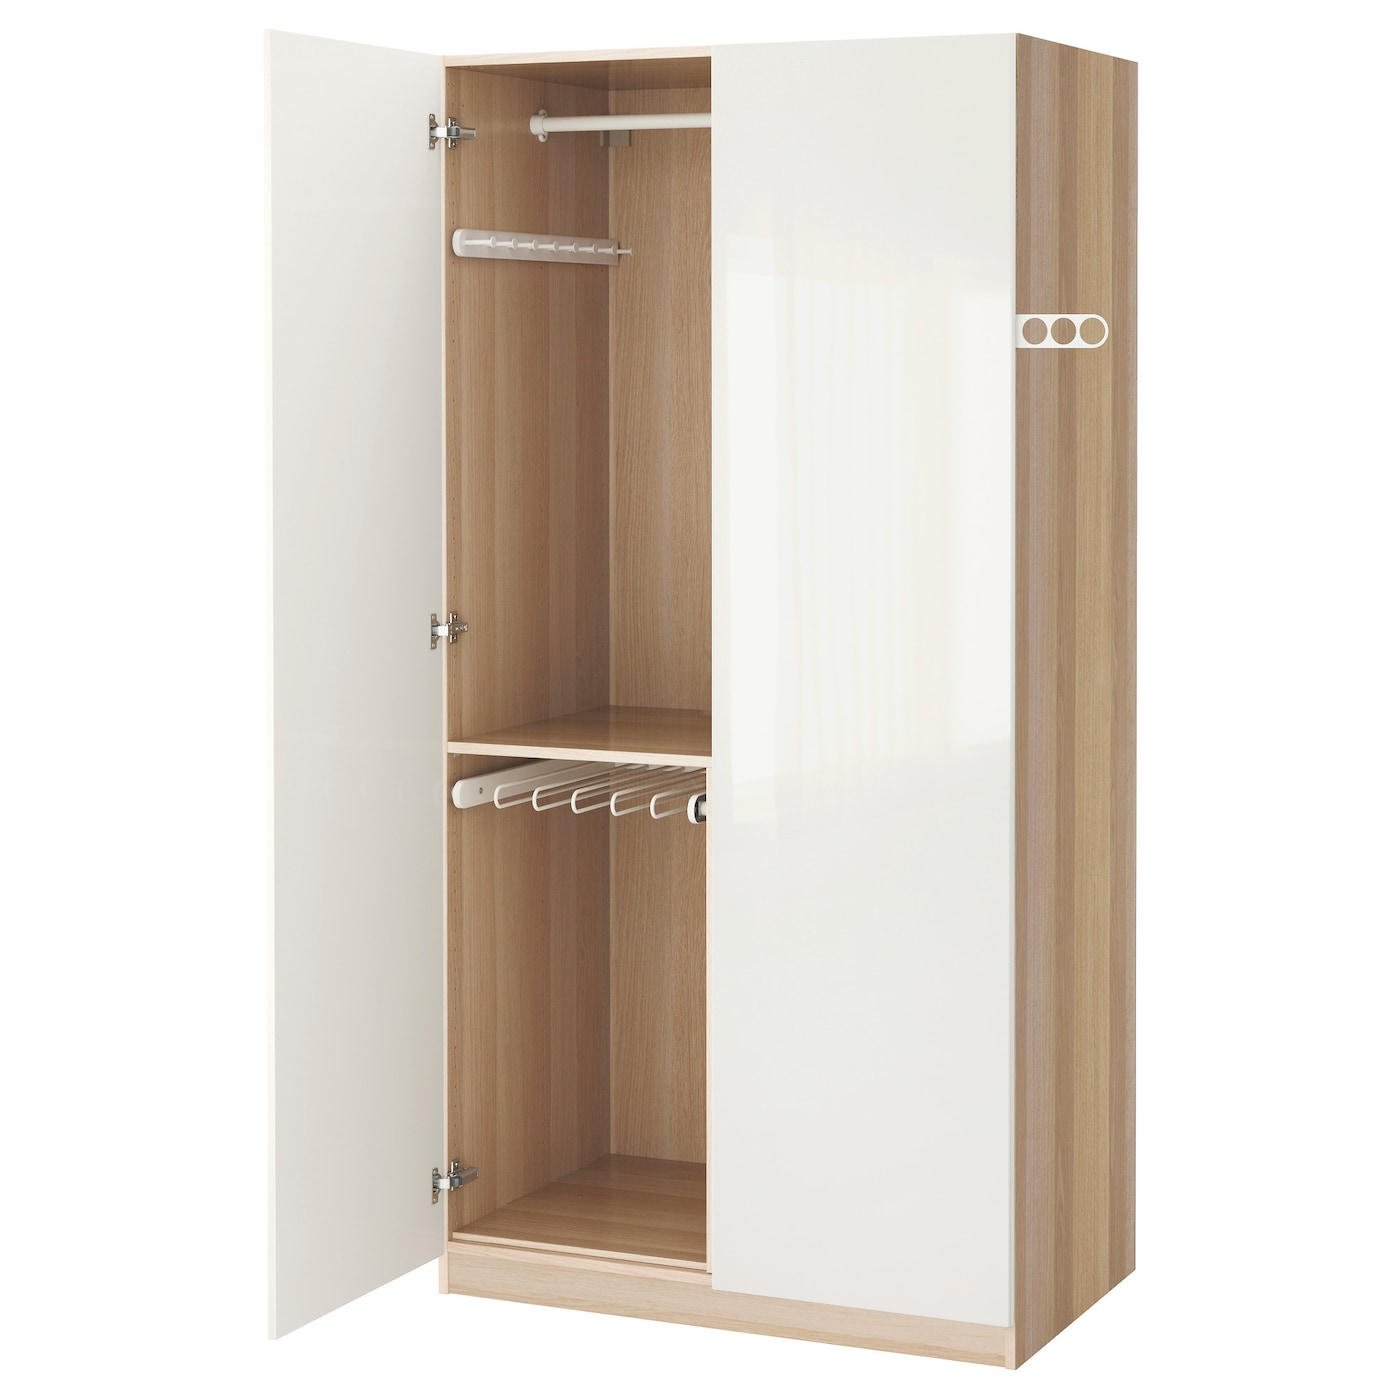 11 sparen kleiderschrank pax von ikea ab 313 99. Black Bedroom Furniture Sets. Home Design Ideas